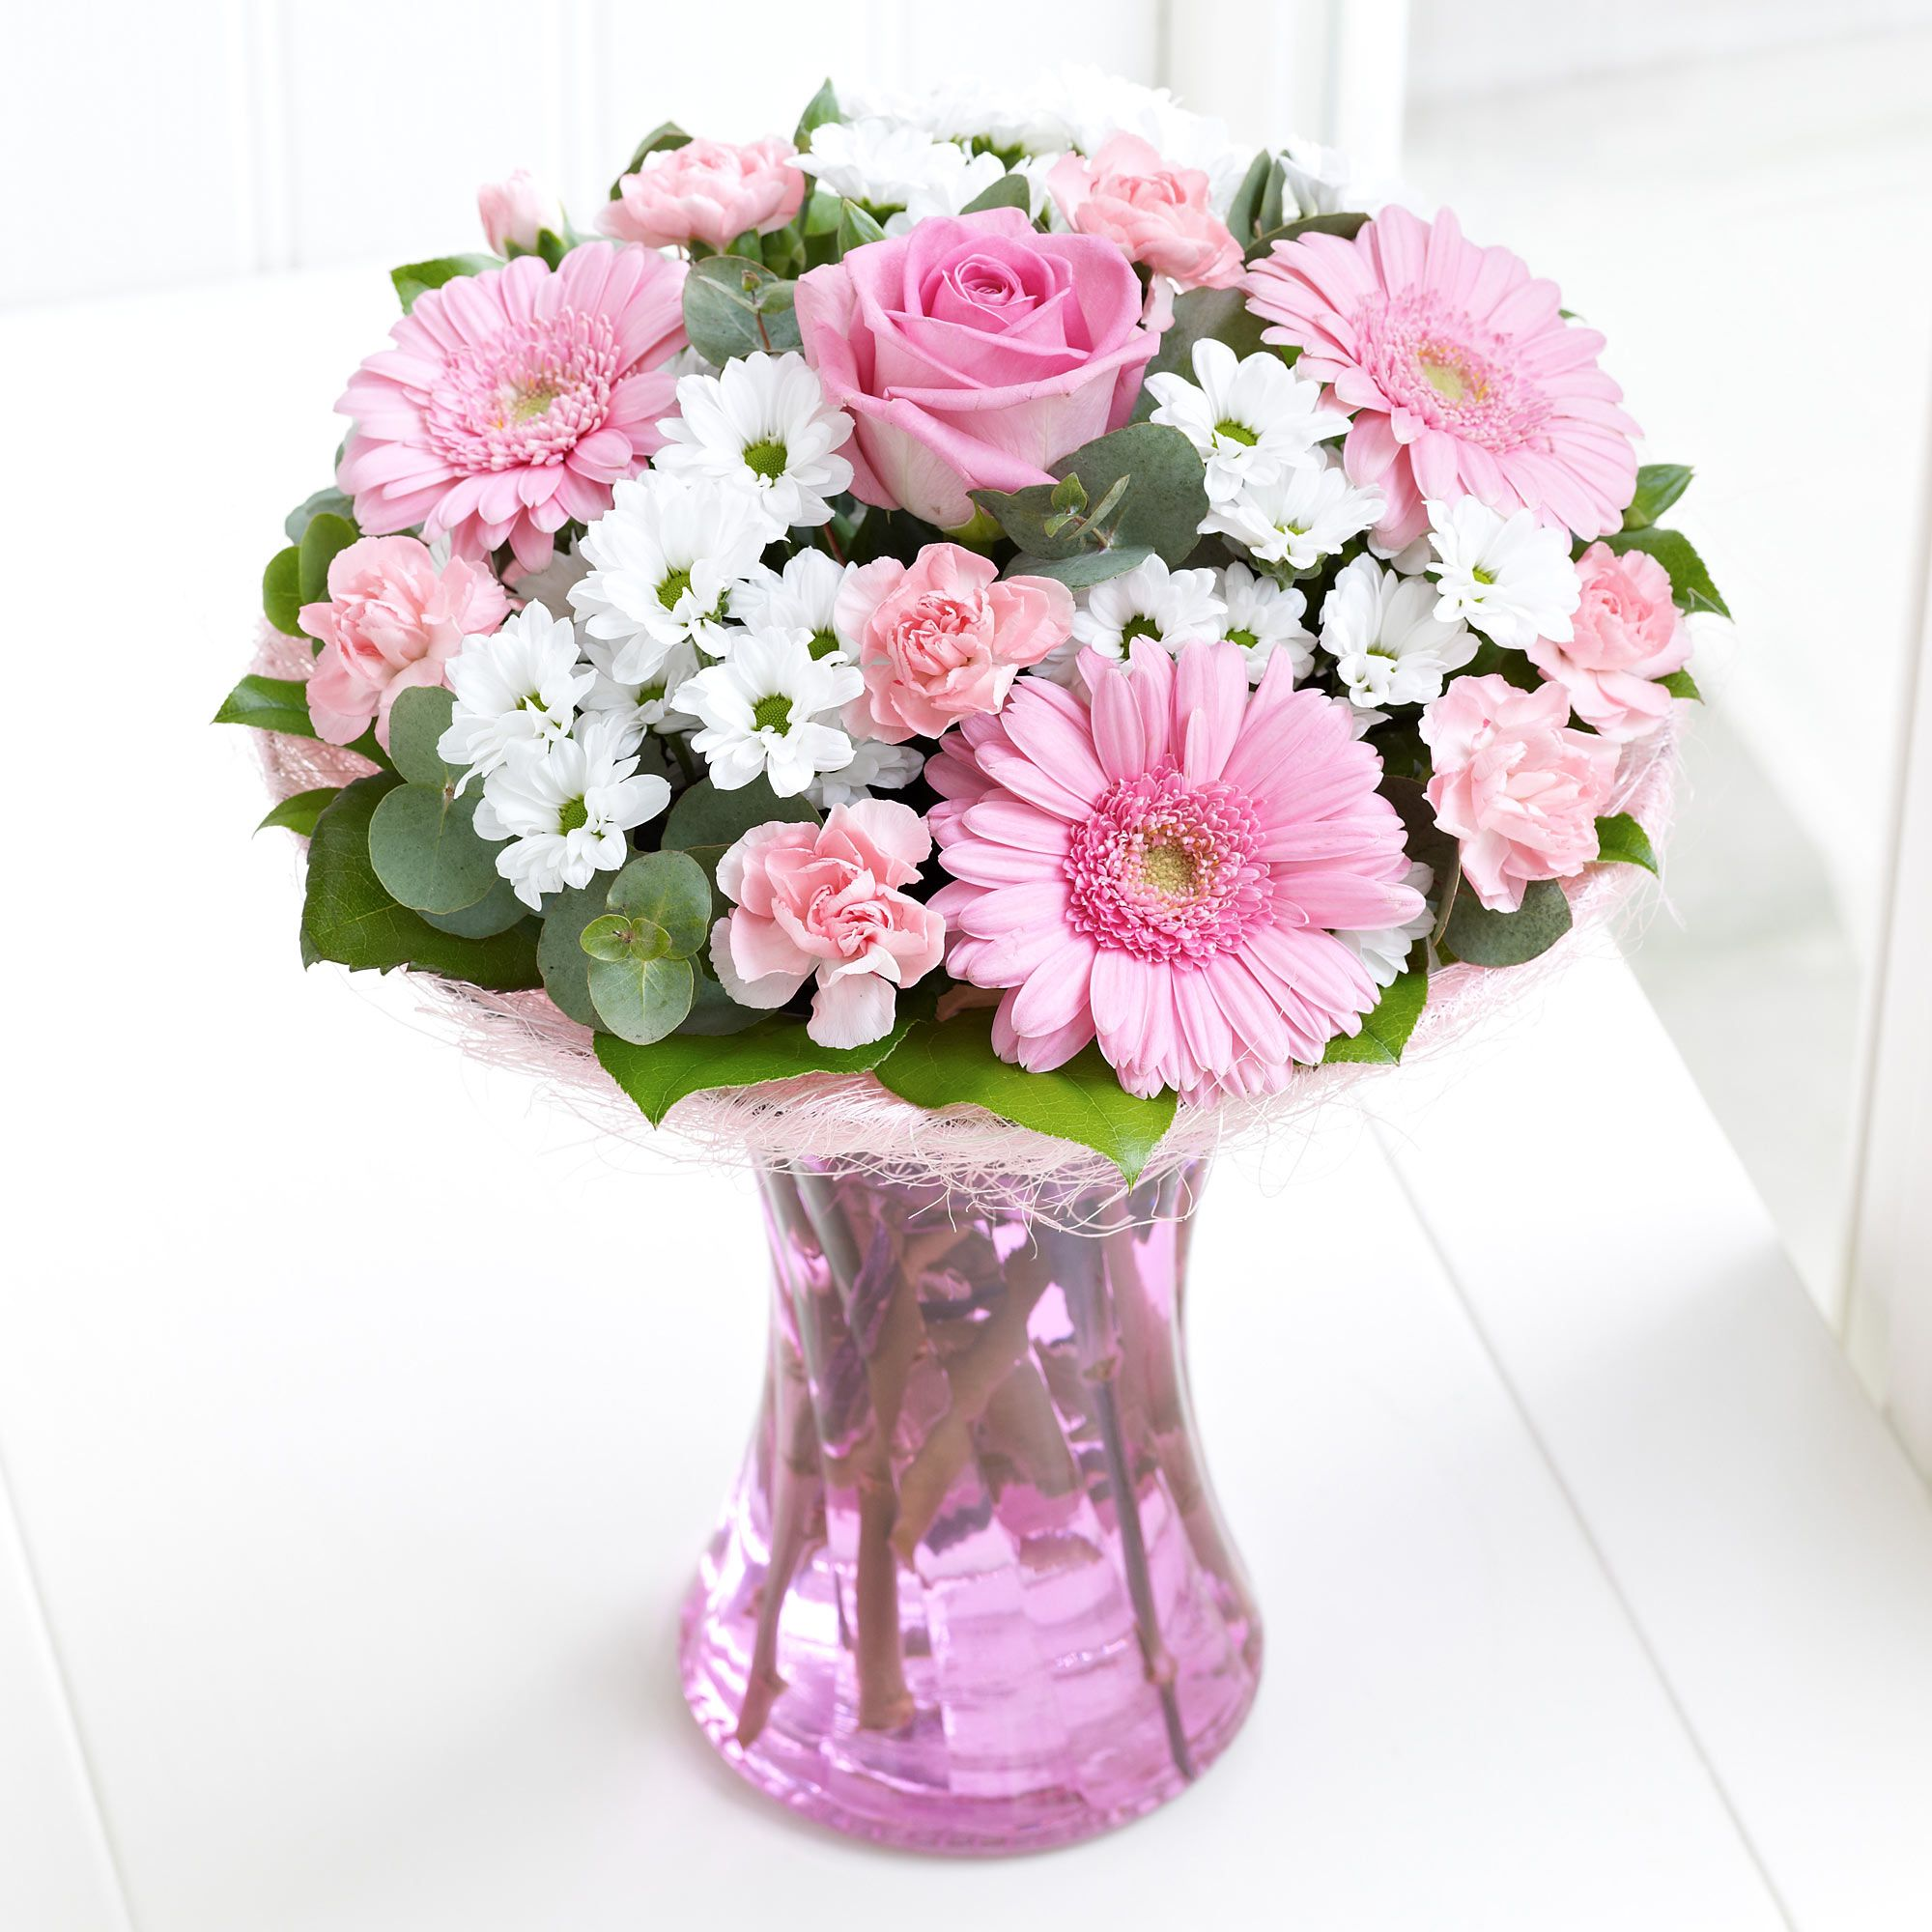 Our pink gift of flowers are a perfect surprise for a loved one our pink gift of flowers are a perfect surprise for a loved one izmirmasajfo Choice Image